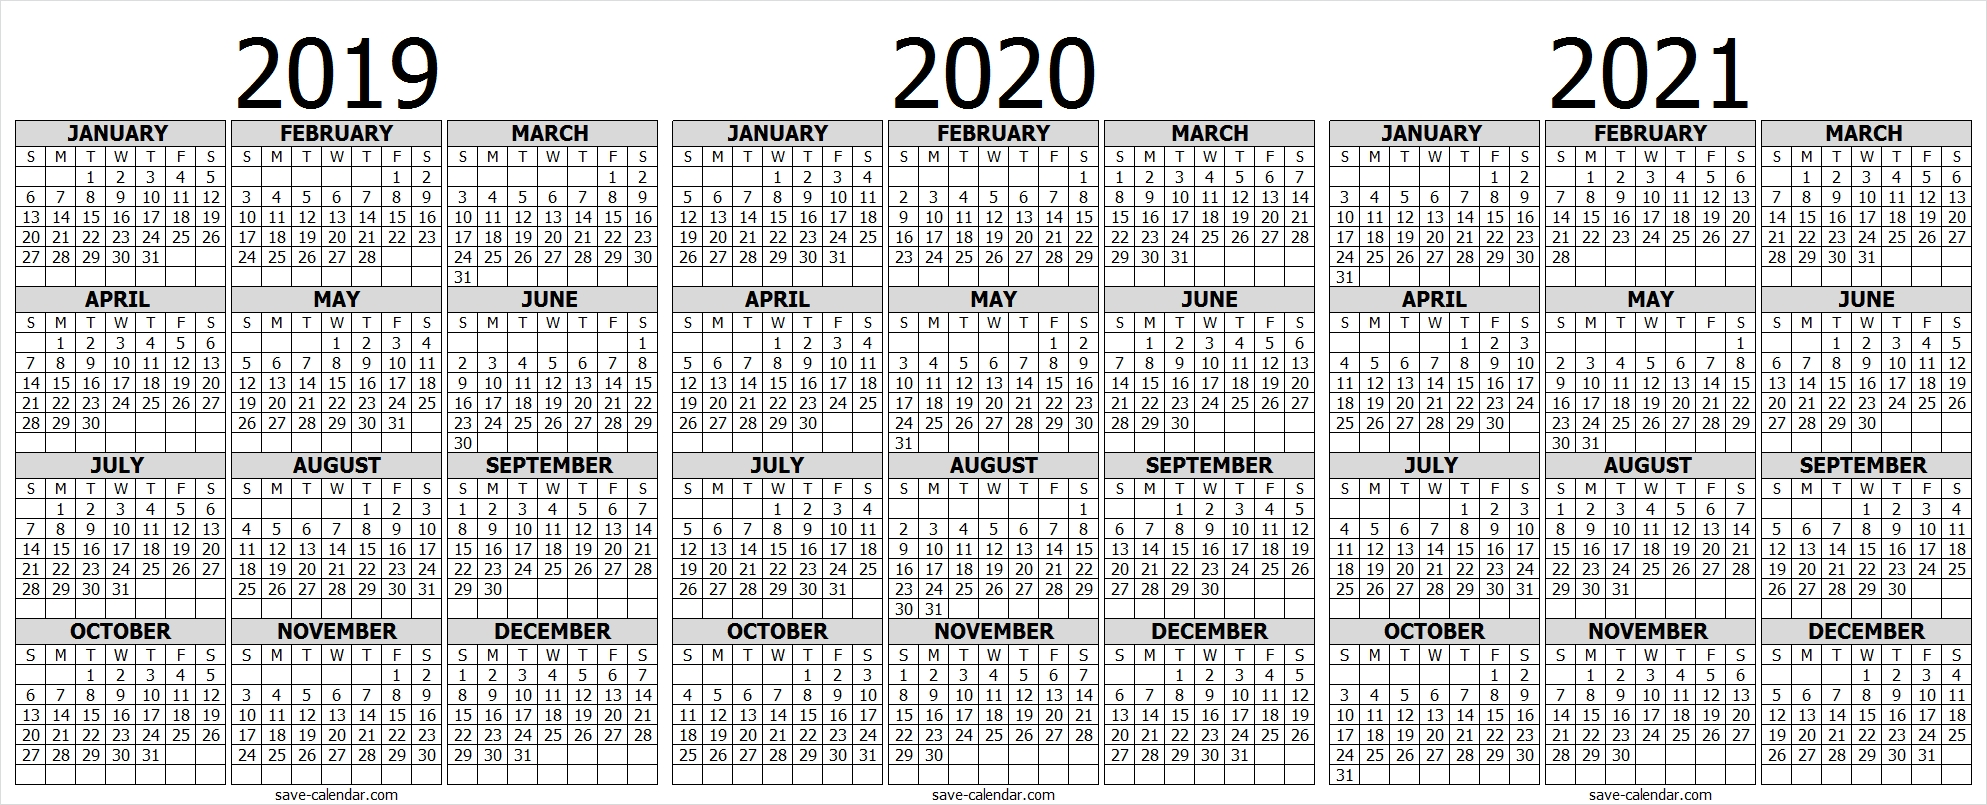 2019 2020 2021 Calendar To Print | Print Calendar, 2021 in Free Printable Calendar For 2019 2020 2021